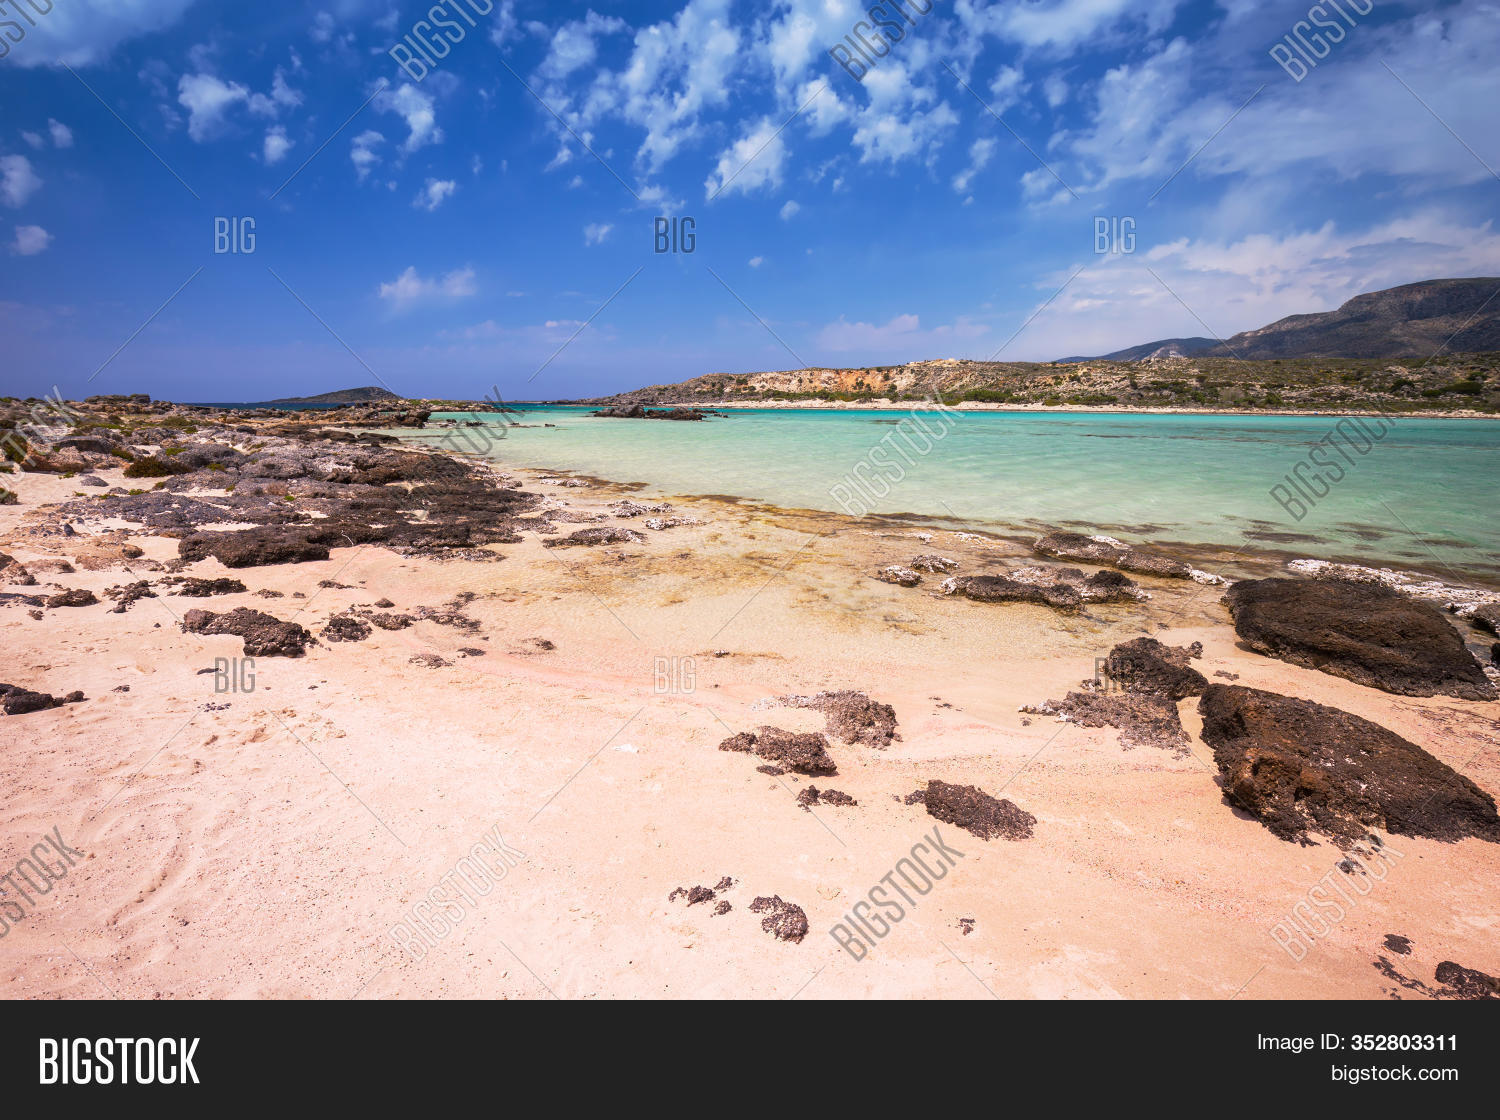 Elafonissi Beach Pink Image Photo Free Trial Bigstock